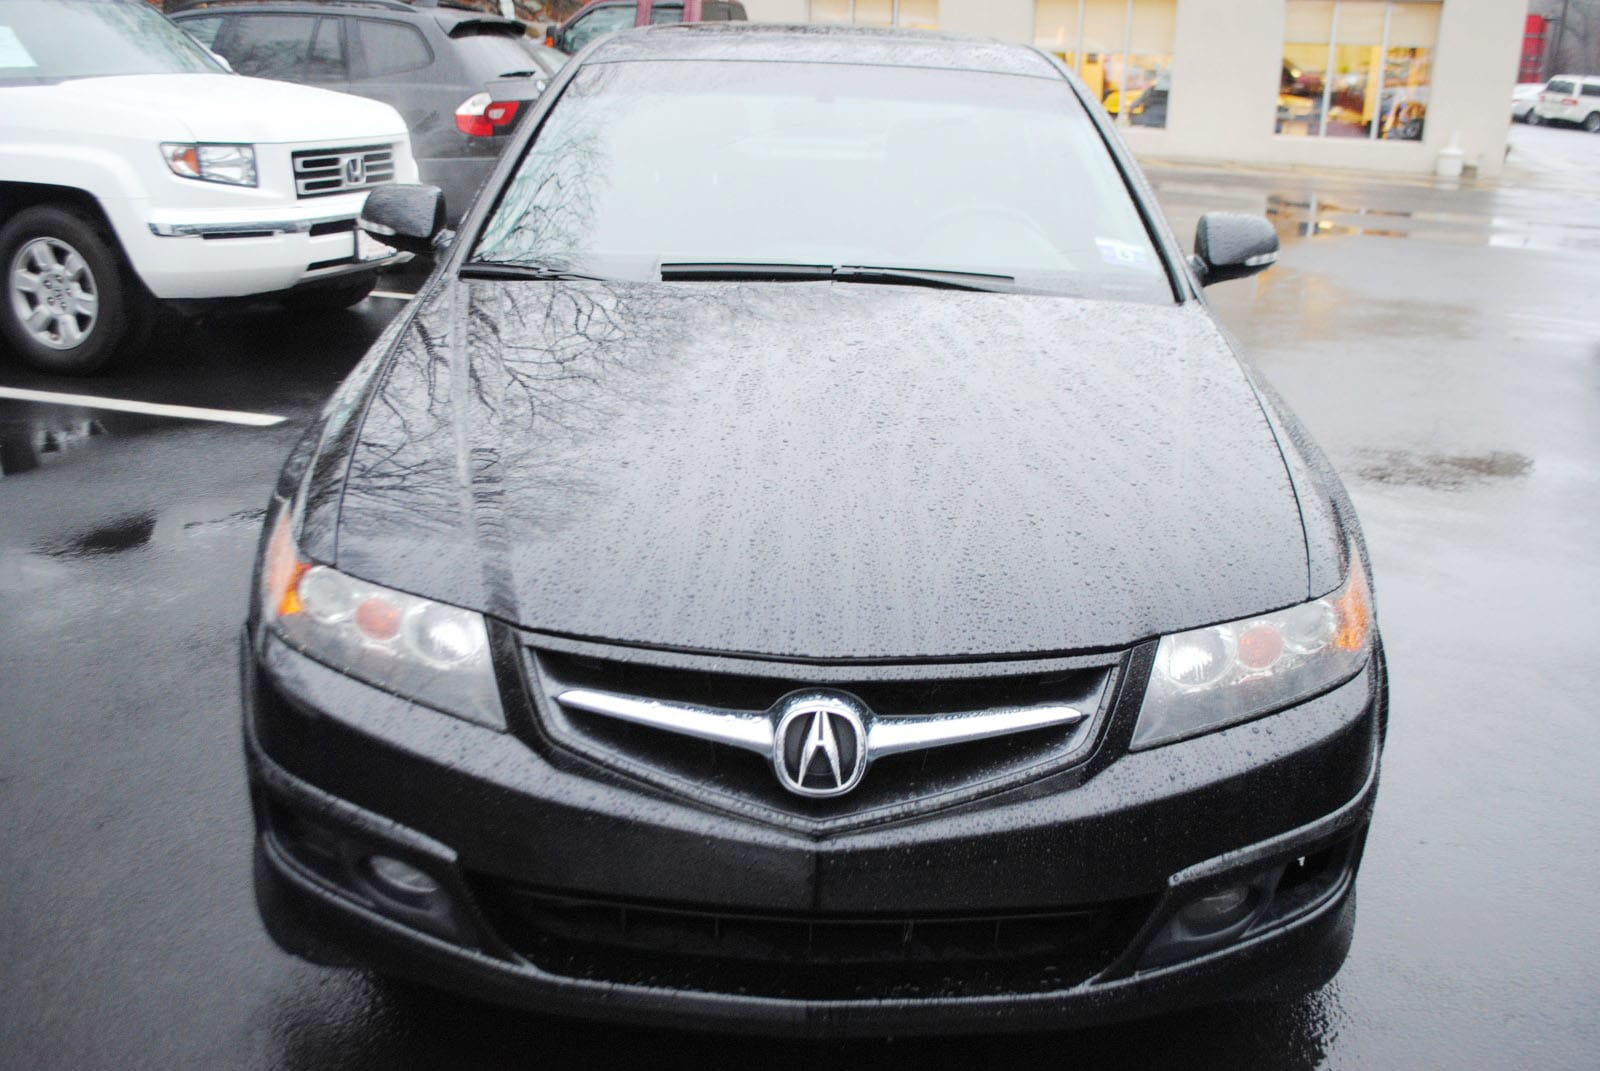 2008 acura tsx fuel injector manual open source user manual u2022 rh dramatic varieties com